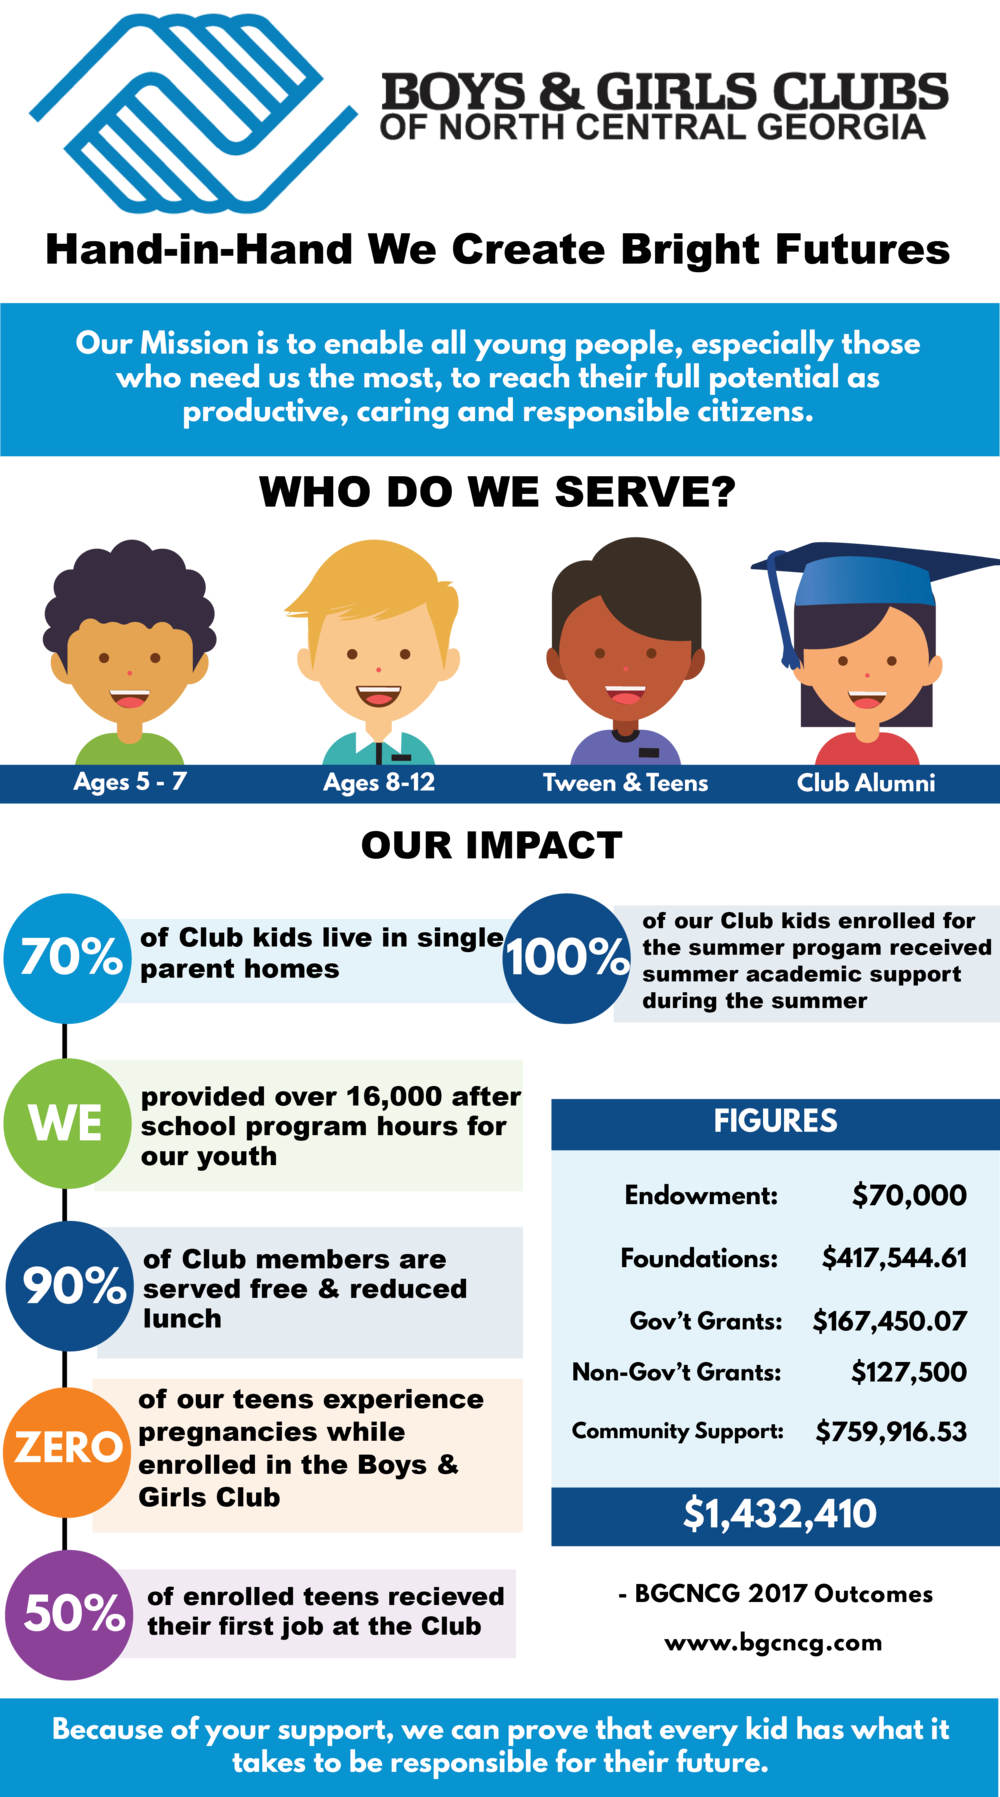 - 2017 BGCNCG National Youth Outcomes Initiative